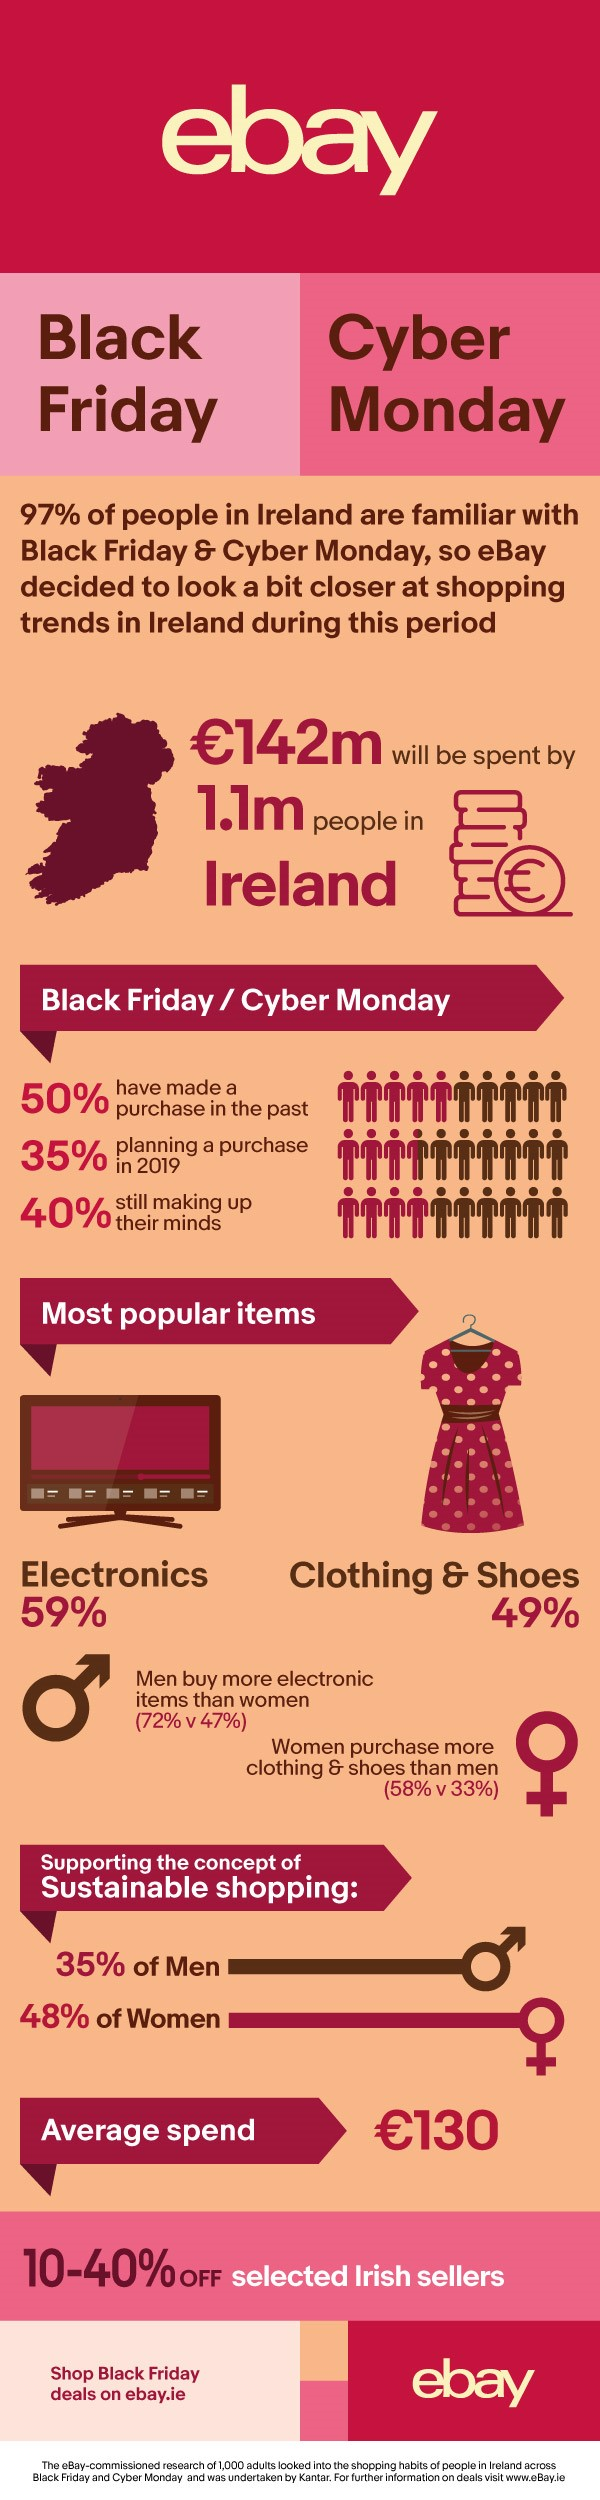 Infographic showing EBay's Black Friday and Cyber Monday study results.